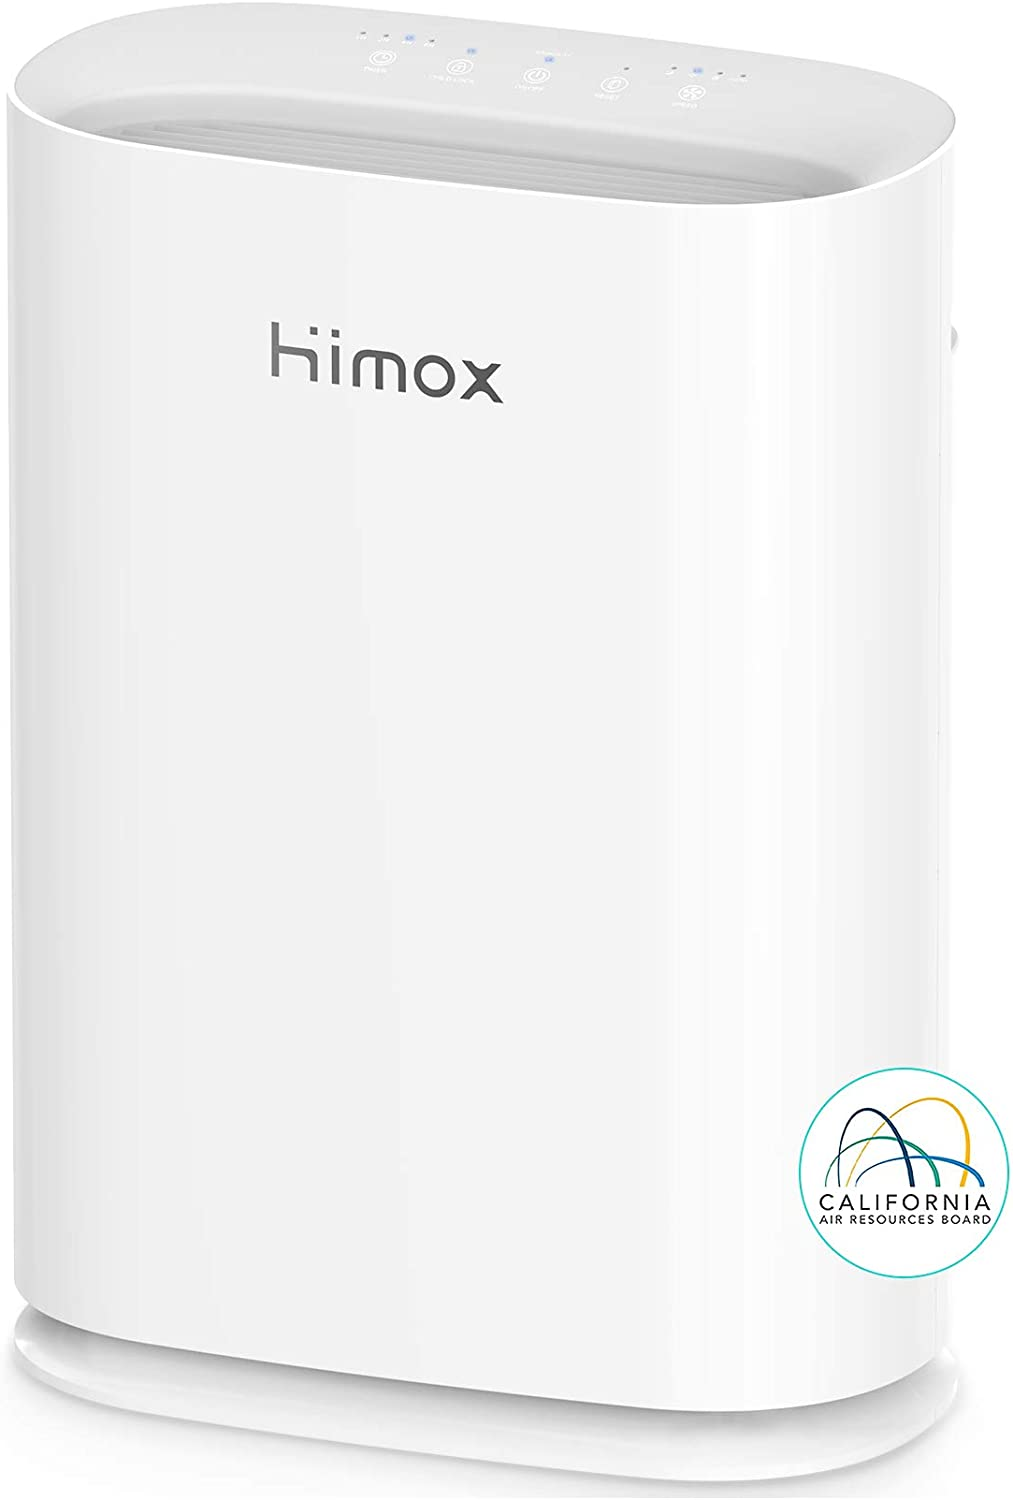 HIMOX H05 Air Purifier Extra-Large Room for 723 Sq Ft, Medical Grade H13 HEPA Filter, Adjustable Timer, Ultra Quiet Sleep Mode, Air Cleaner Purifiers 99.9% Removal in a Smart Design, Fit for Home Bedroom Living Room